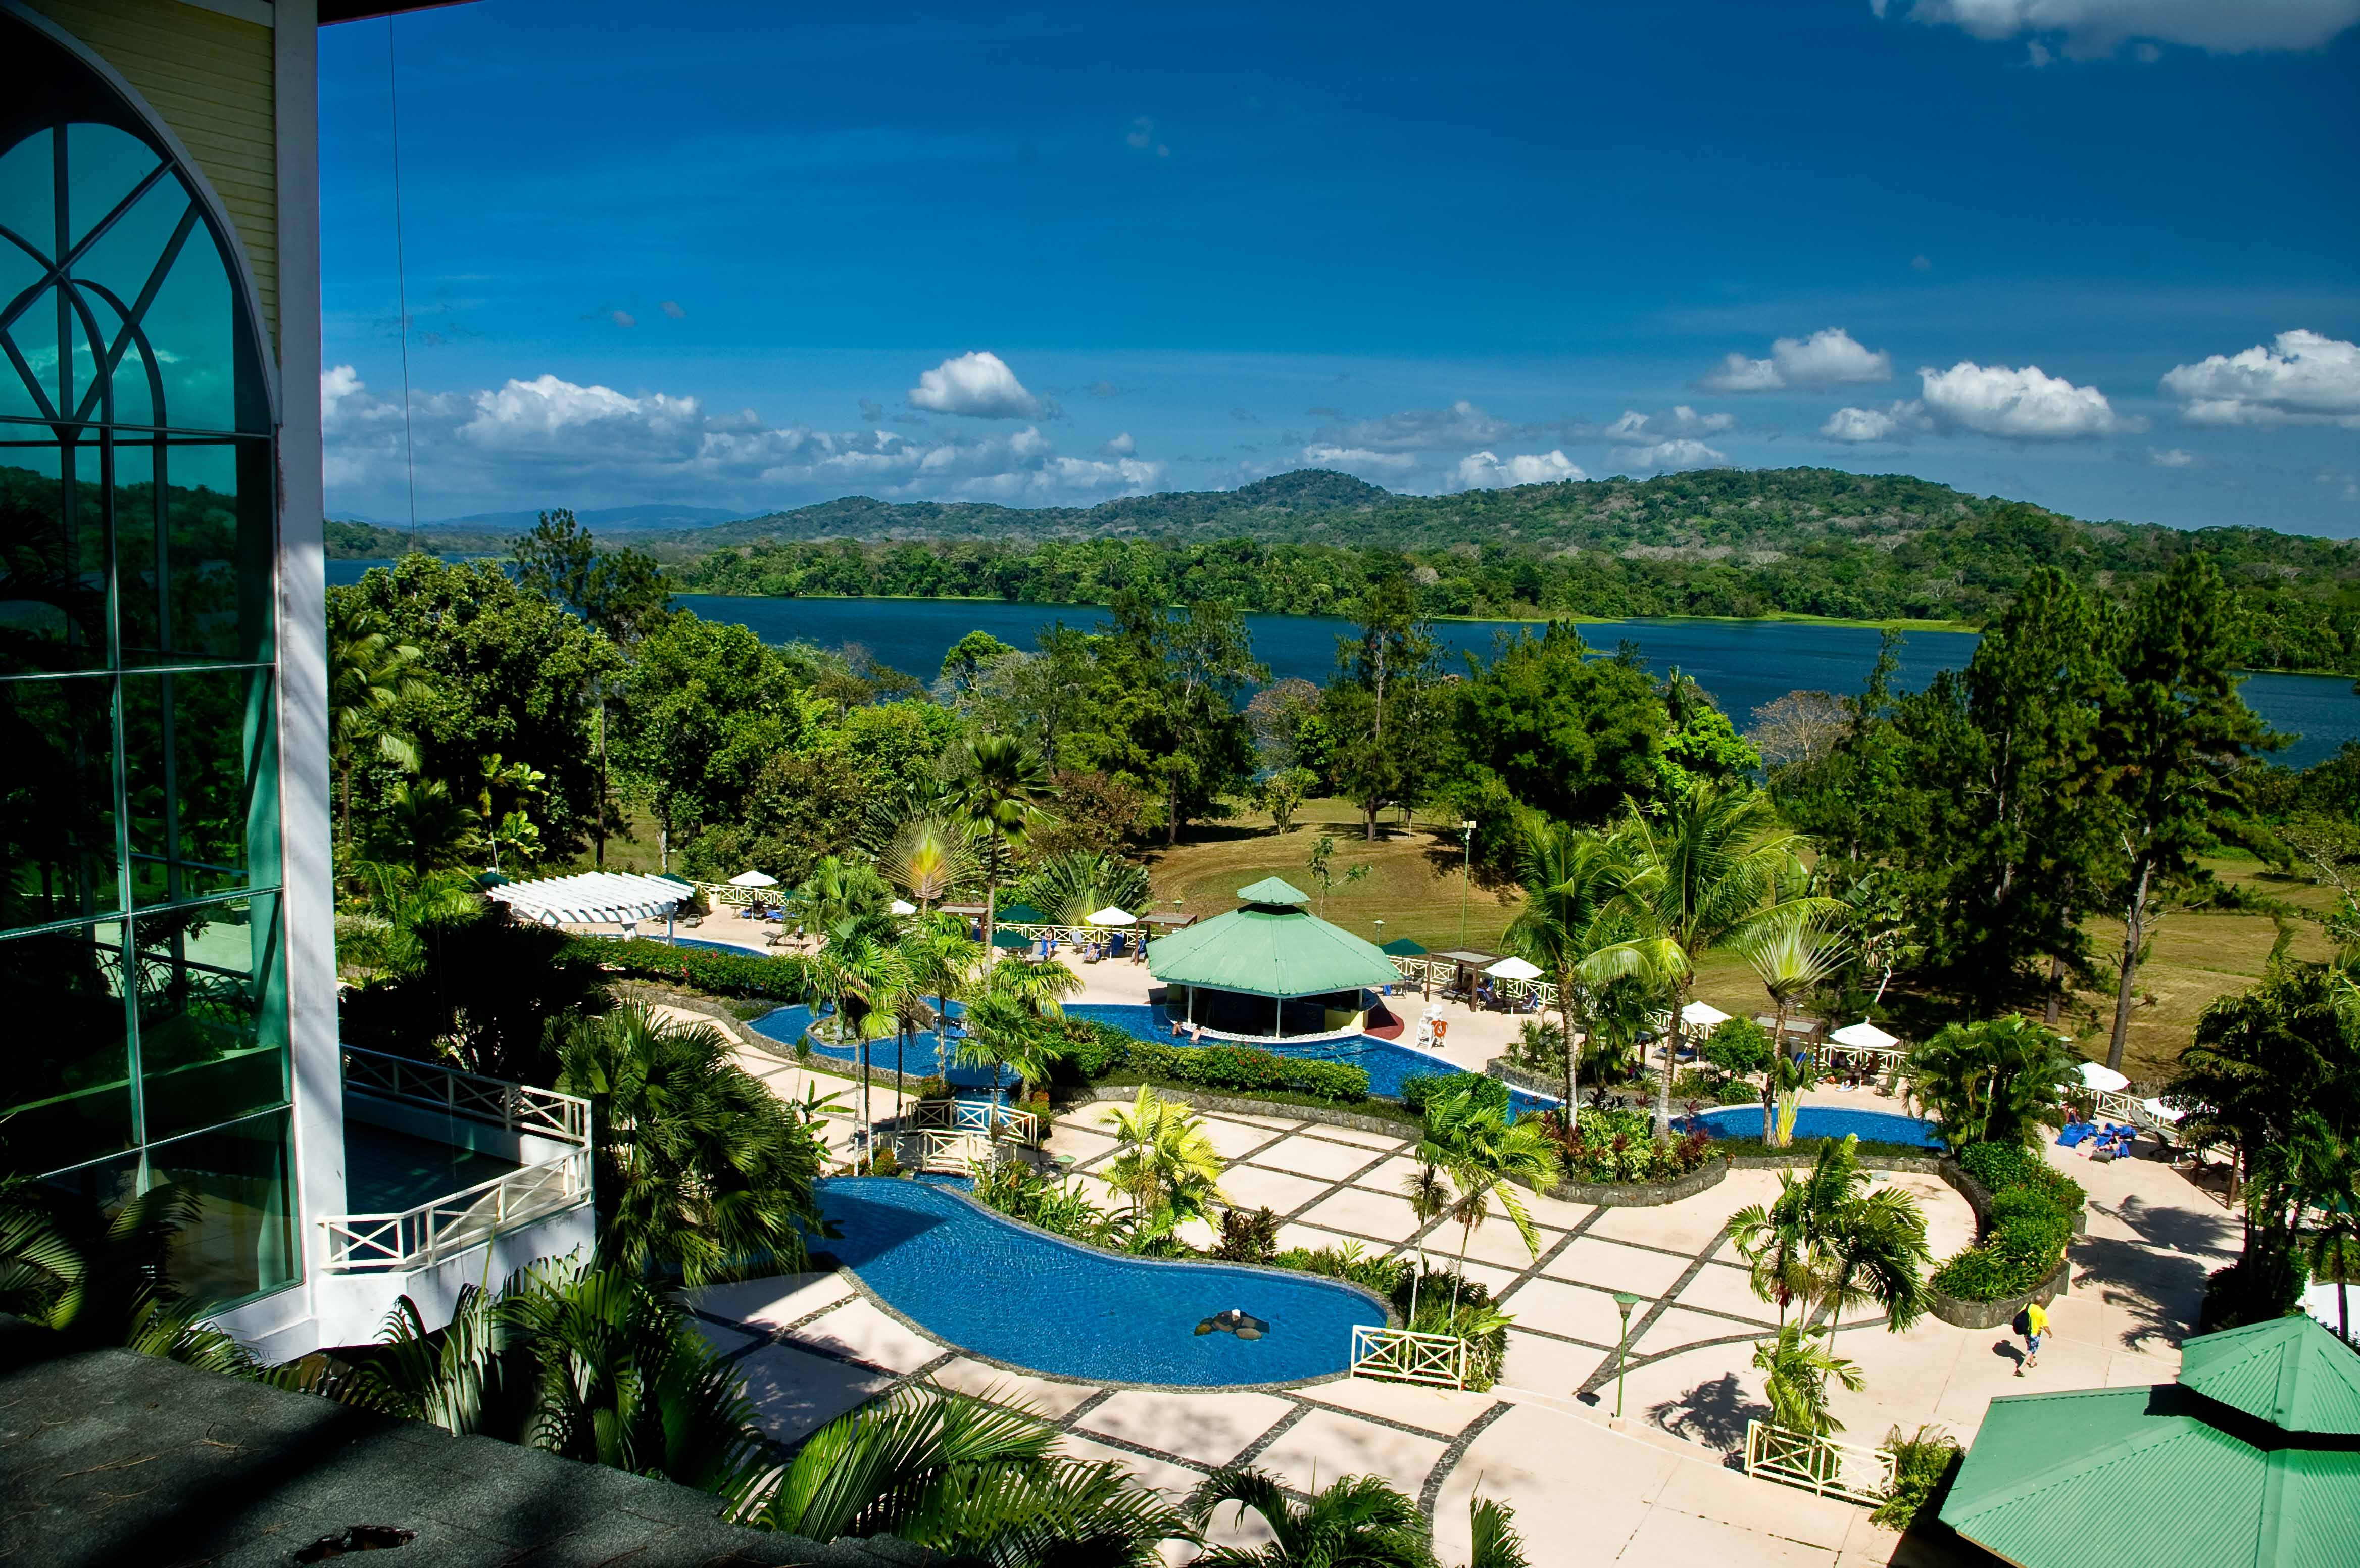 The Beauty of the Gamboa Rainforest Resort  Keiths